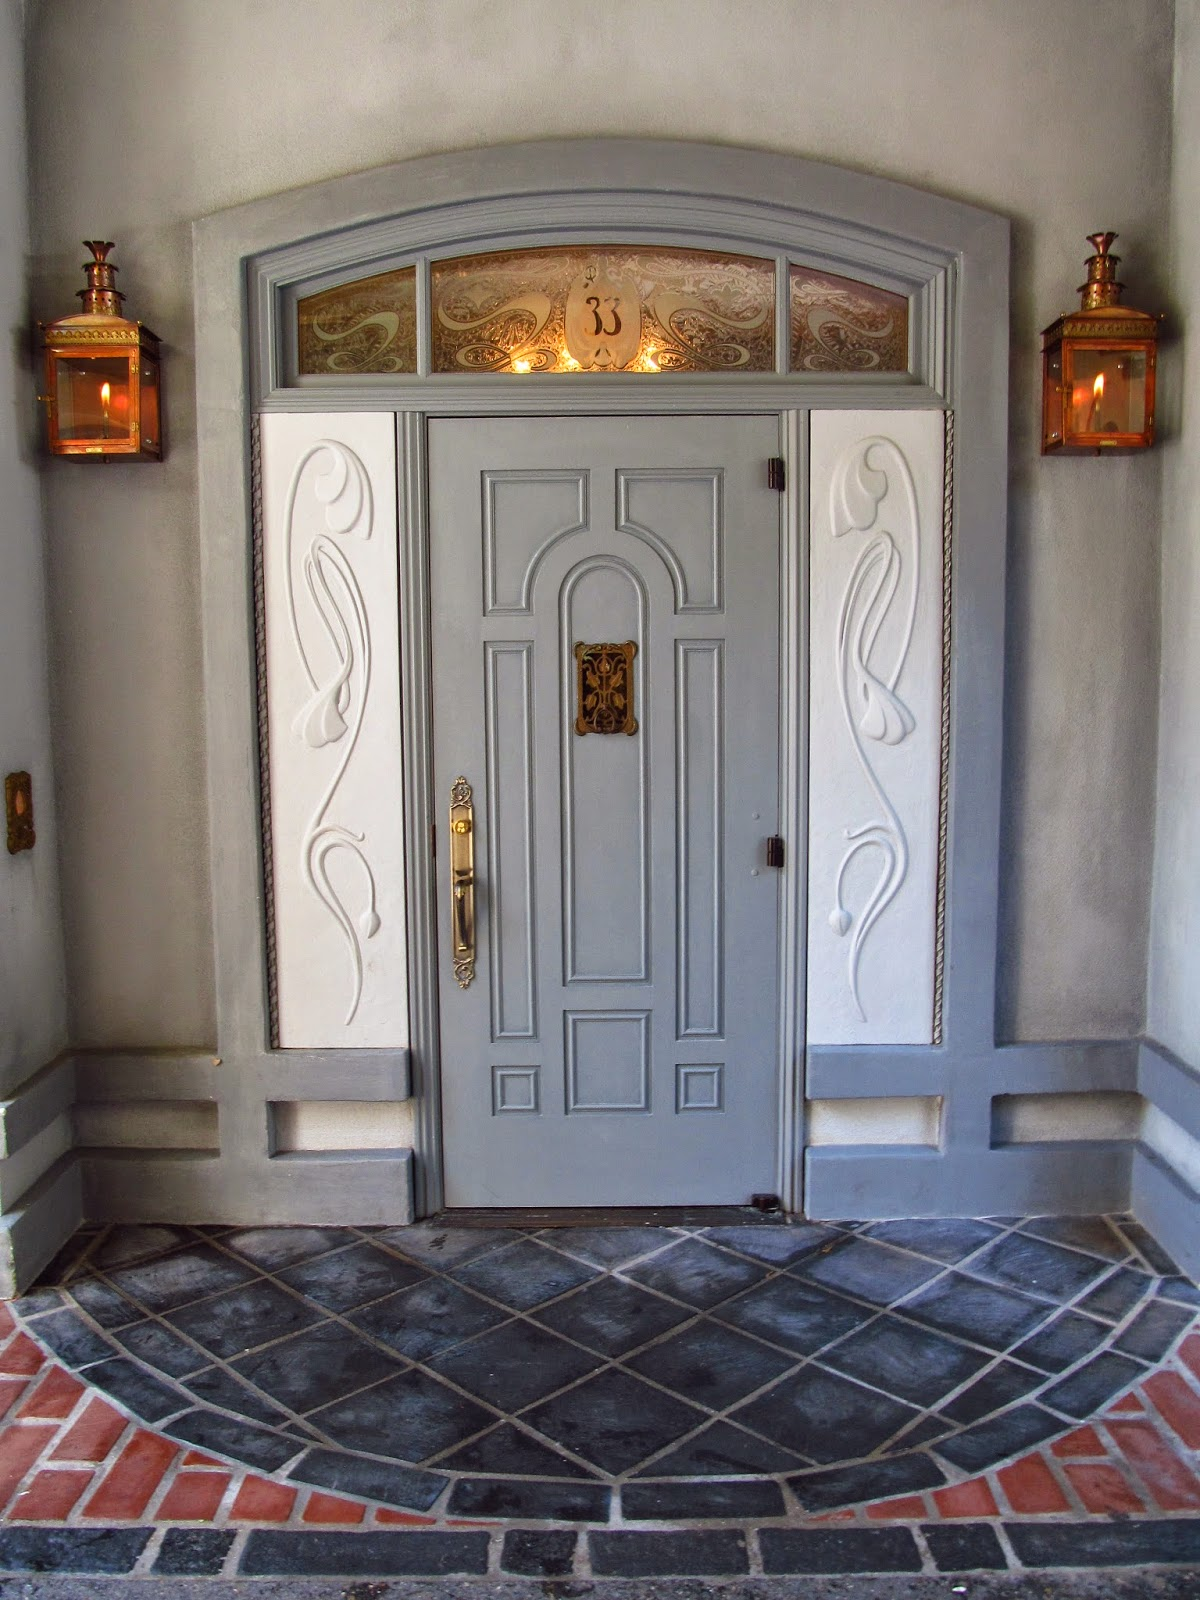 The Club 33 entrance doors & club 33 Archives - Babes in Disneyland